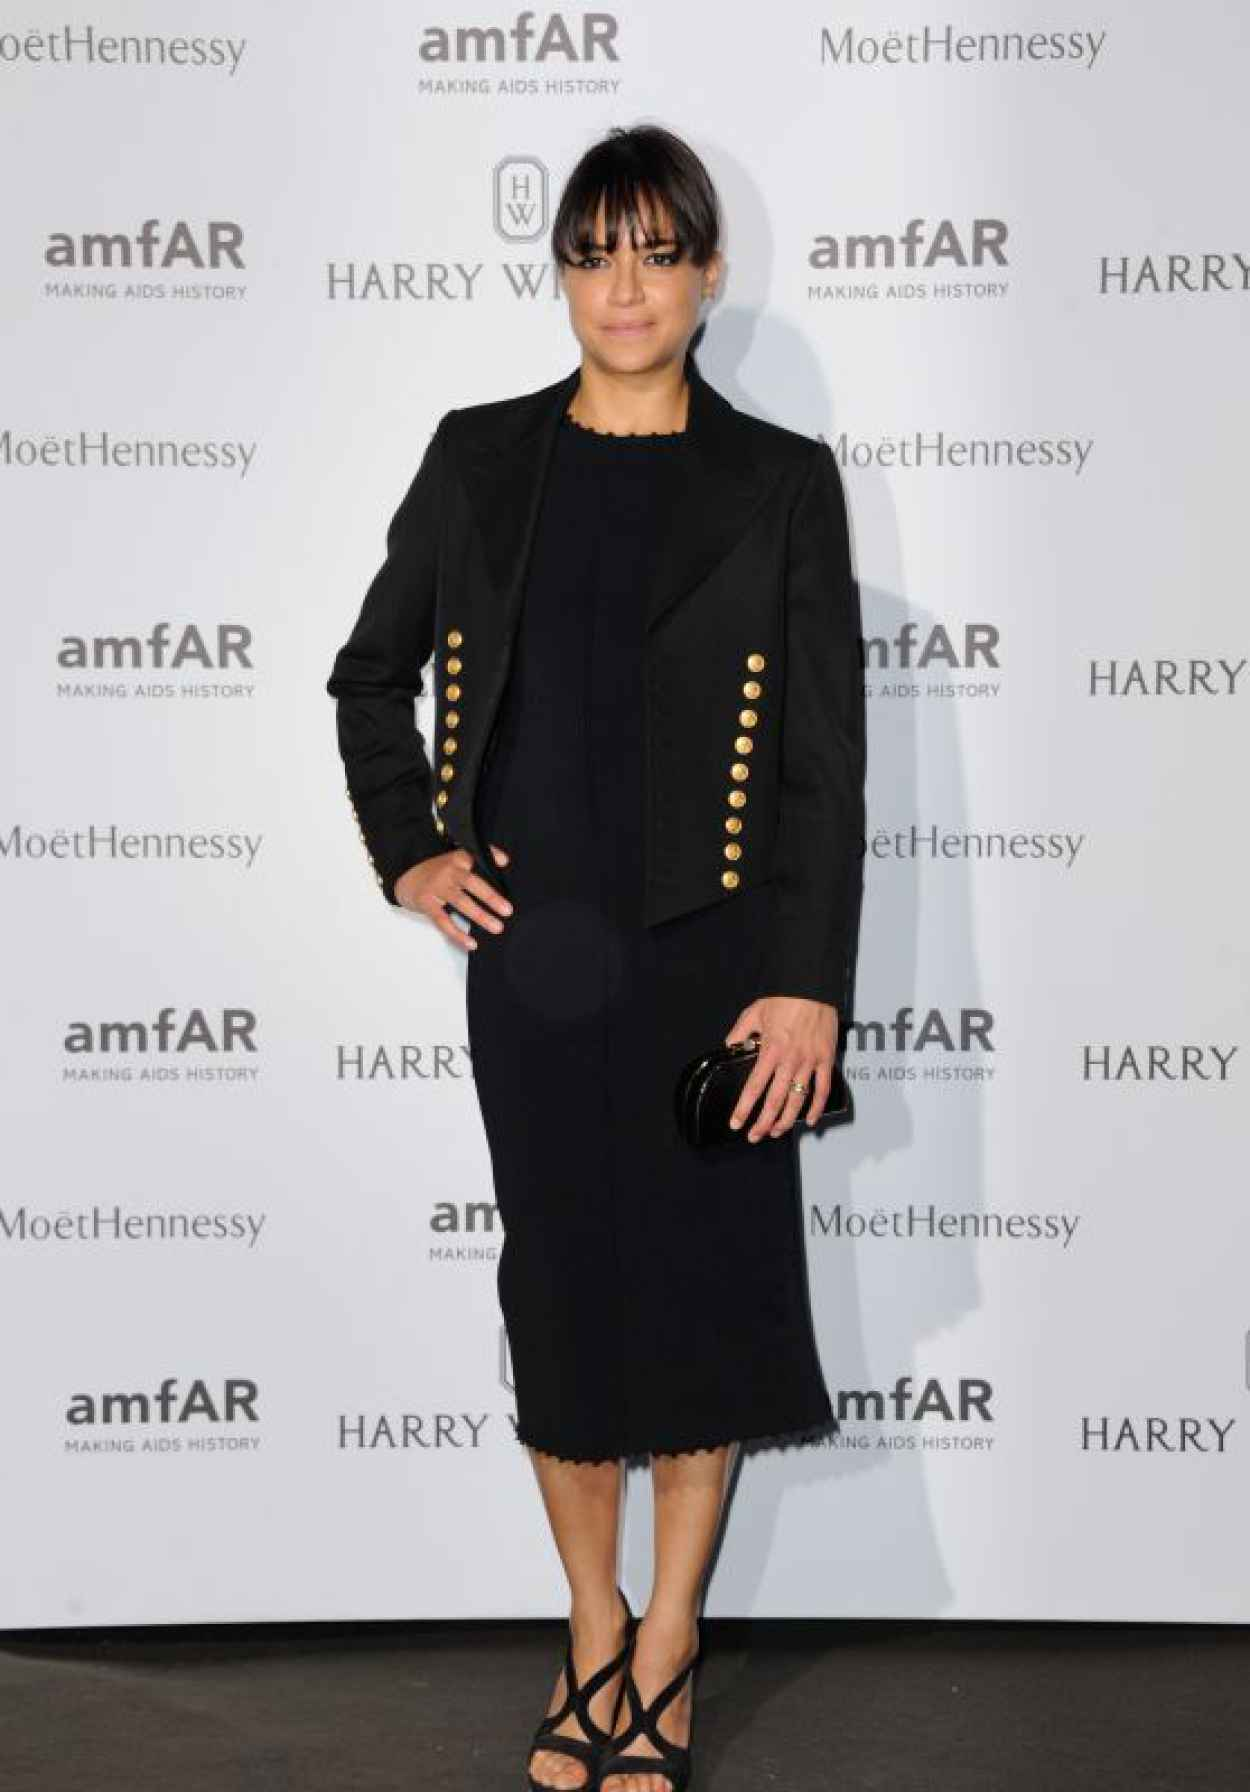 Michelle Rodriguez on Red Carpet - amfAR Dinner in Paris, July 2015-1